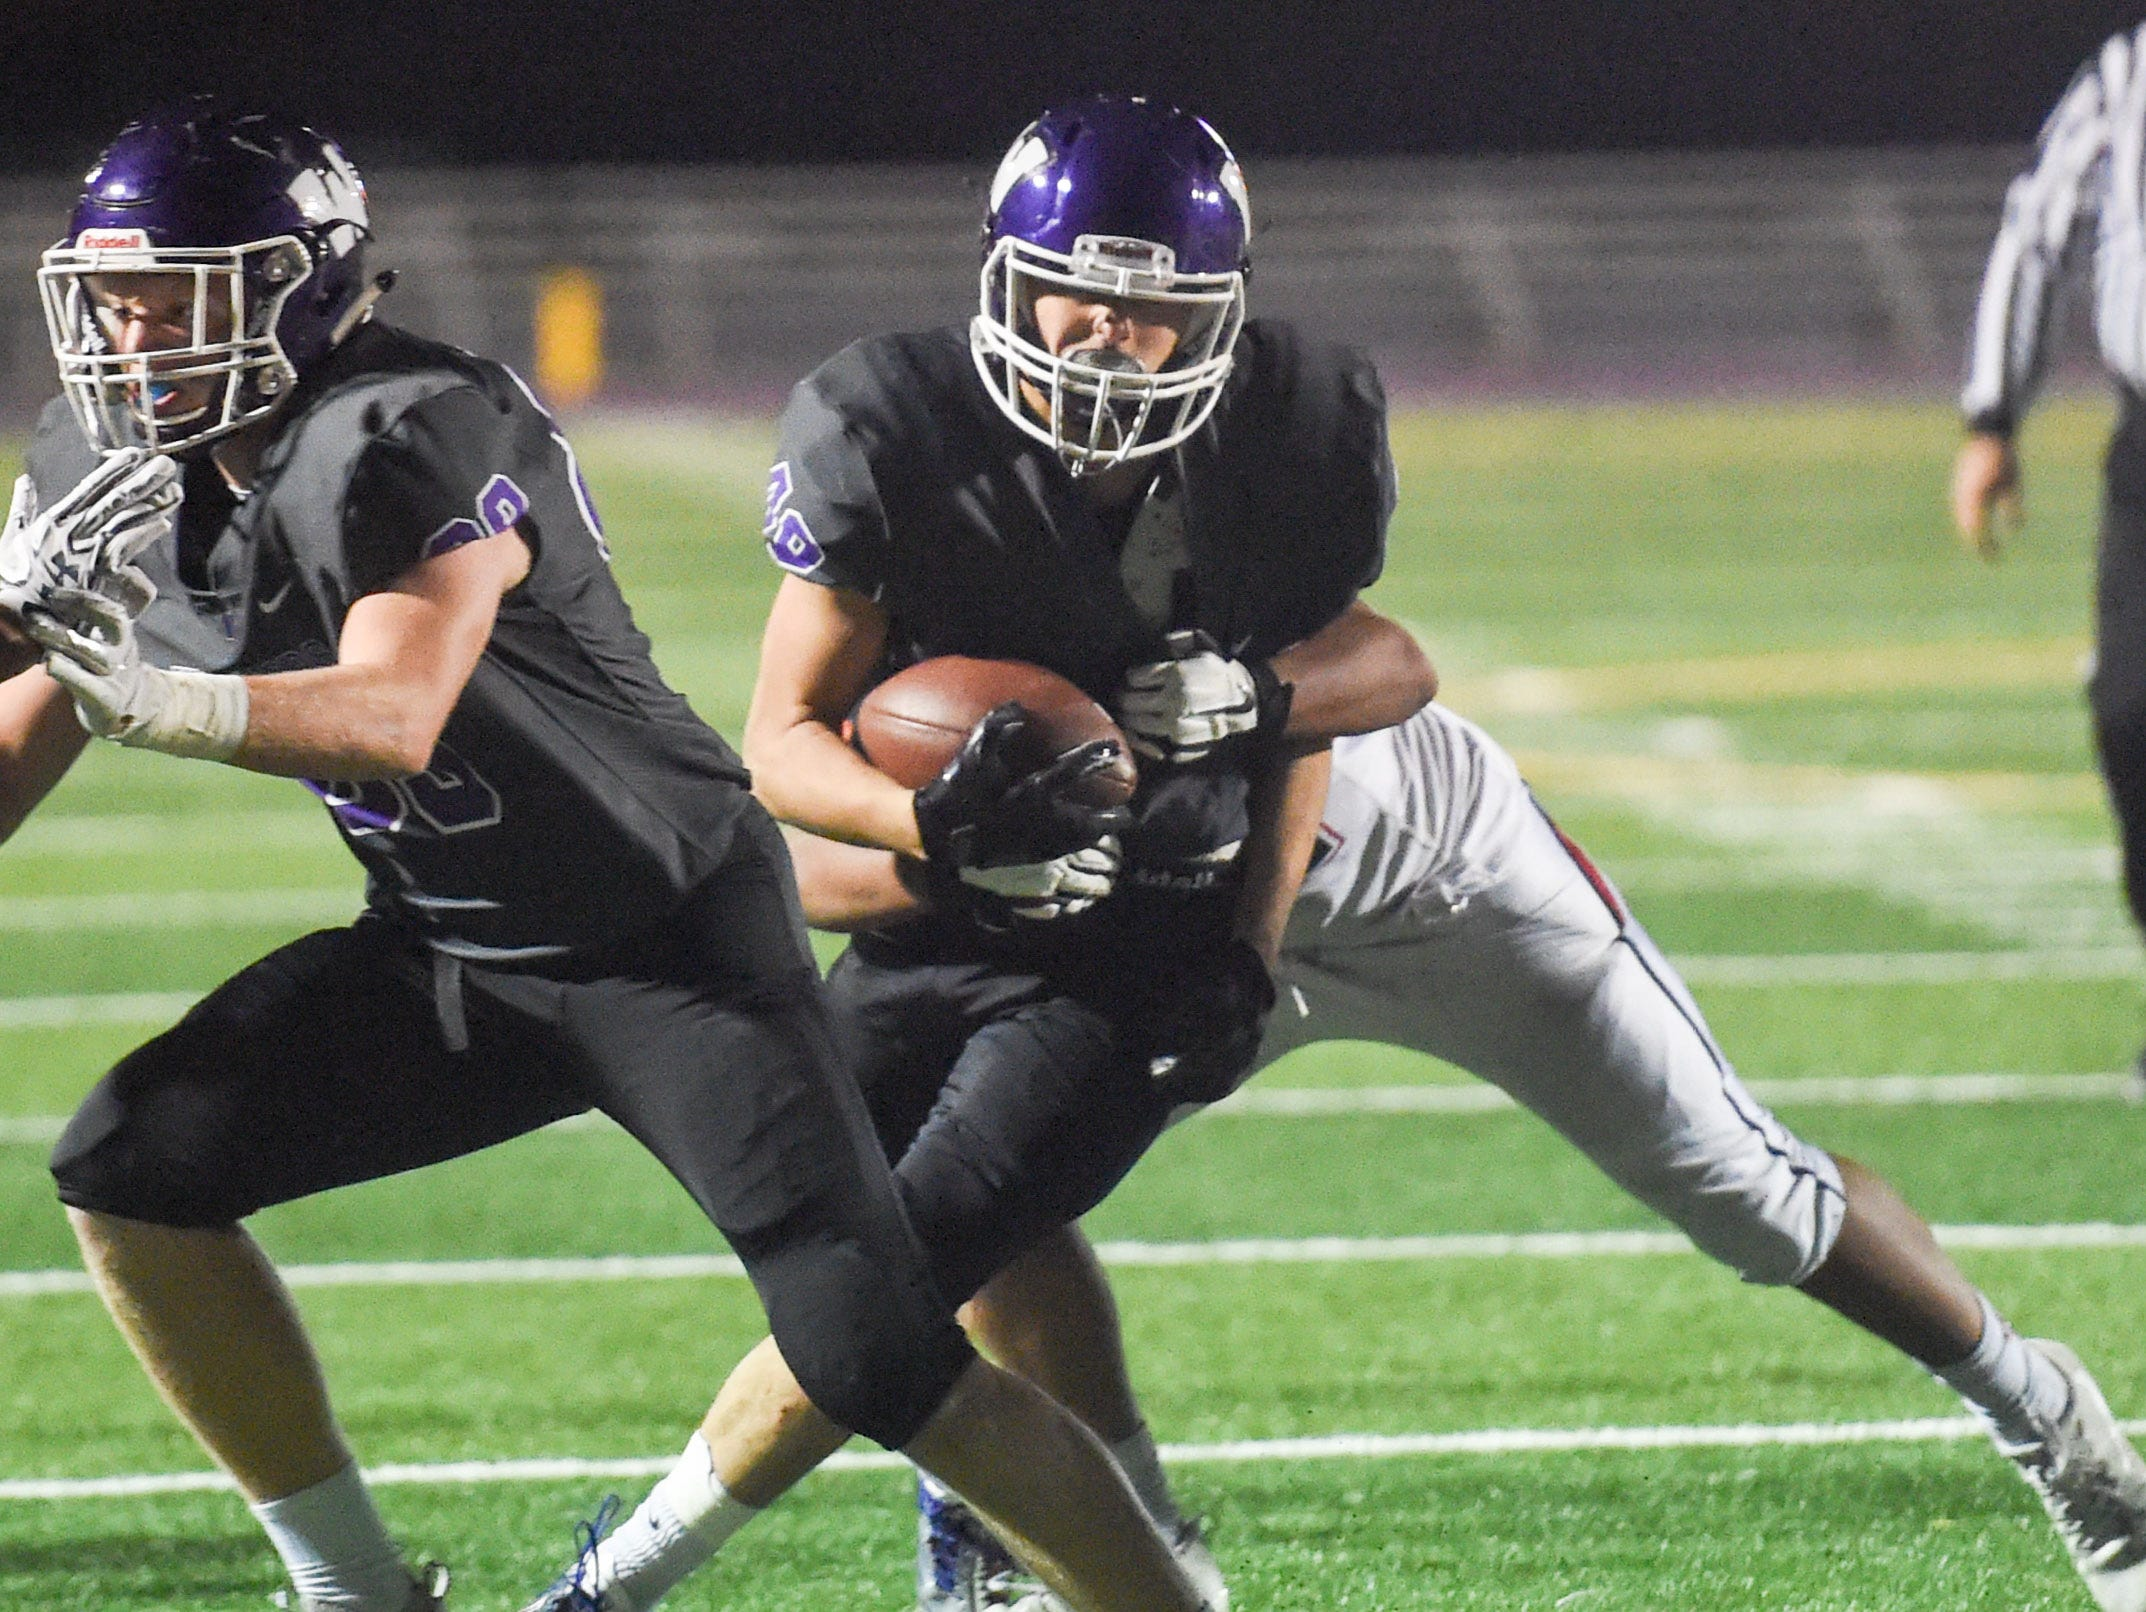 Waukee's Alex Linquist (49) fights his way down field on Friday, Oct. 26, 2018 during a playoff game between the Waukee Warriors and the Urbandale J-Hawks at Waukee High School.